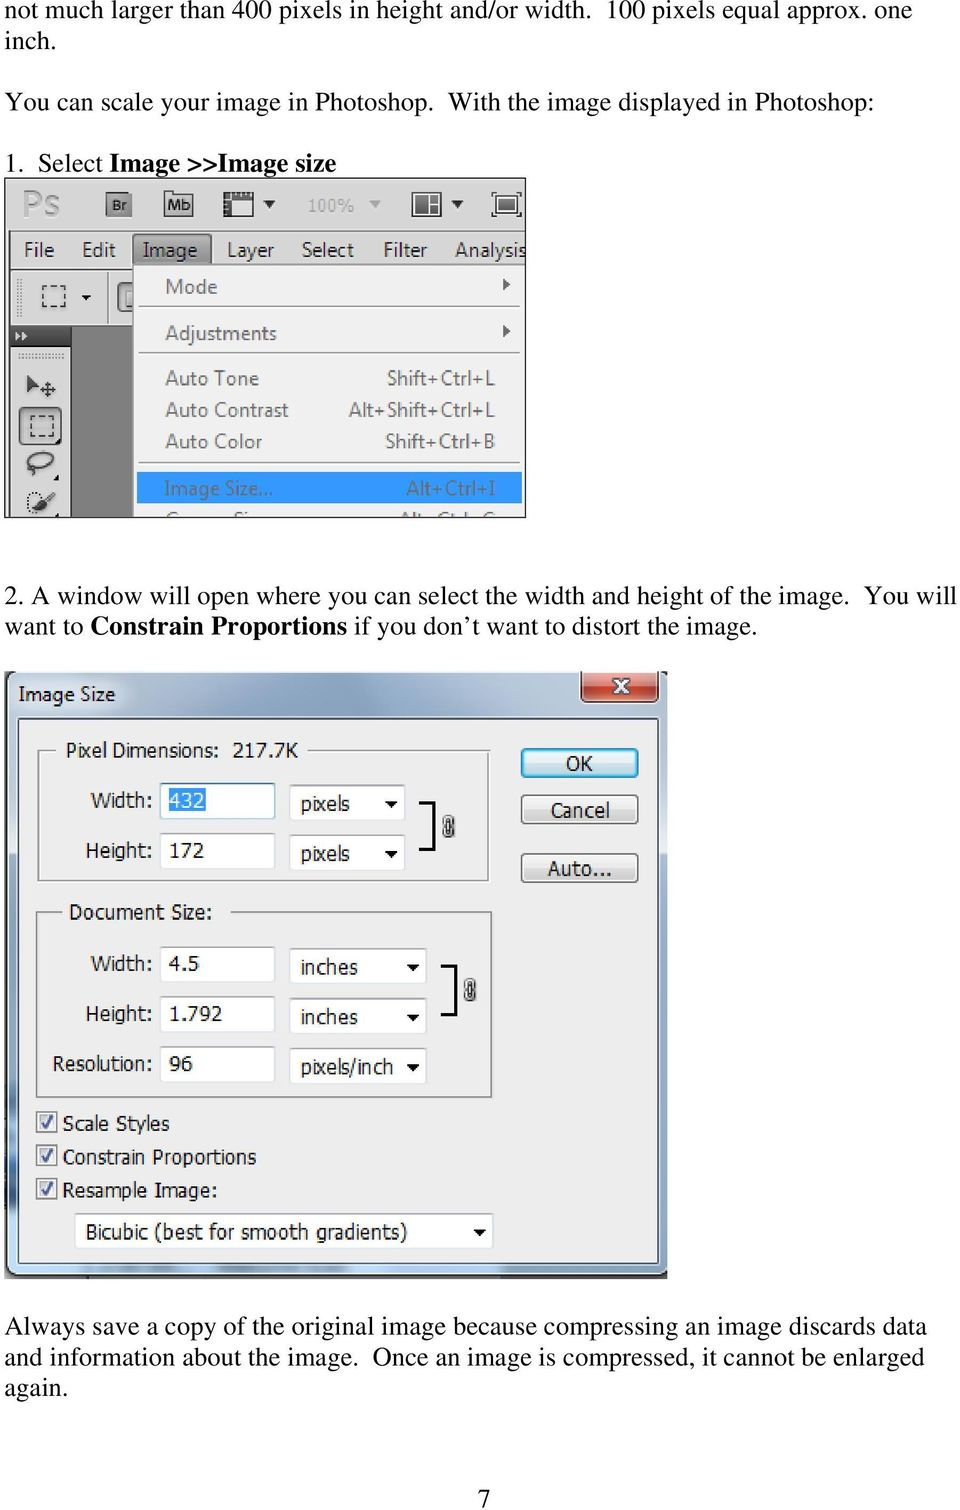 A window will open where you can select the width and height of the image.